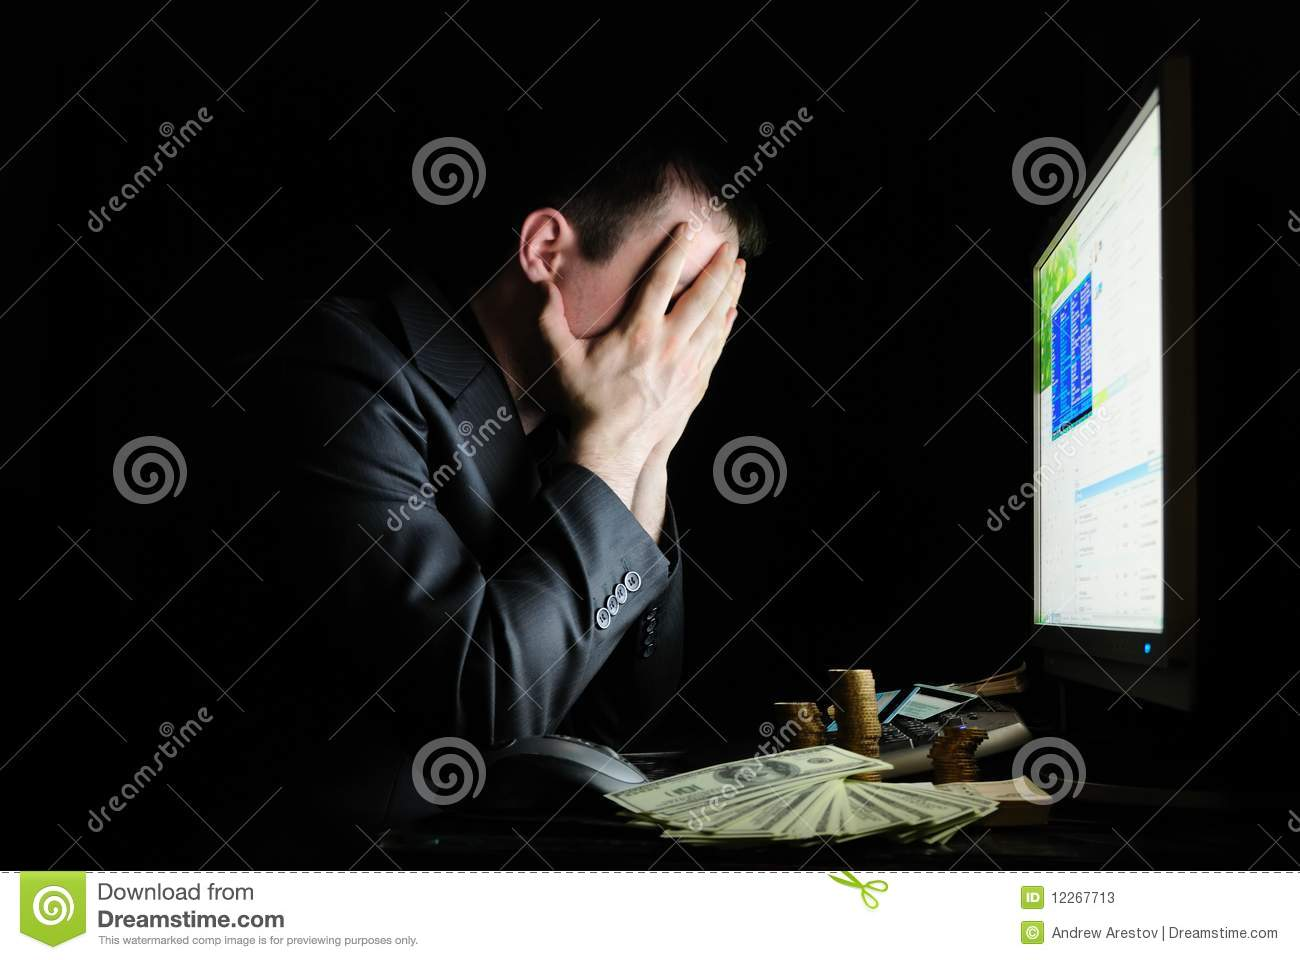 Tired user in front of the monitor